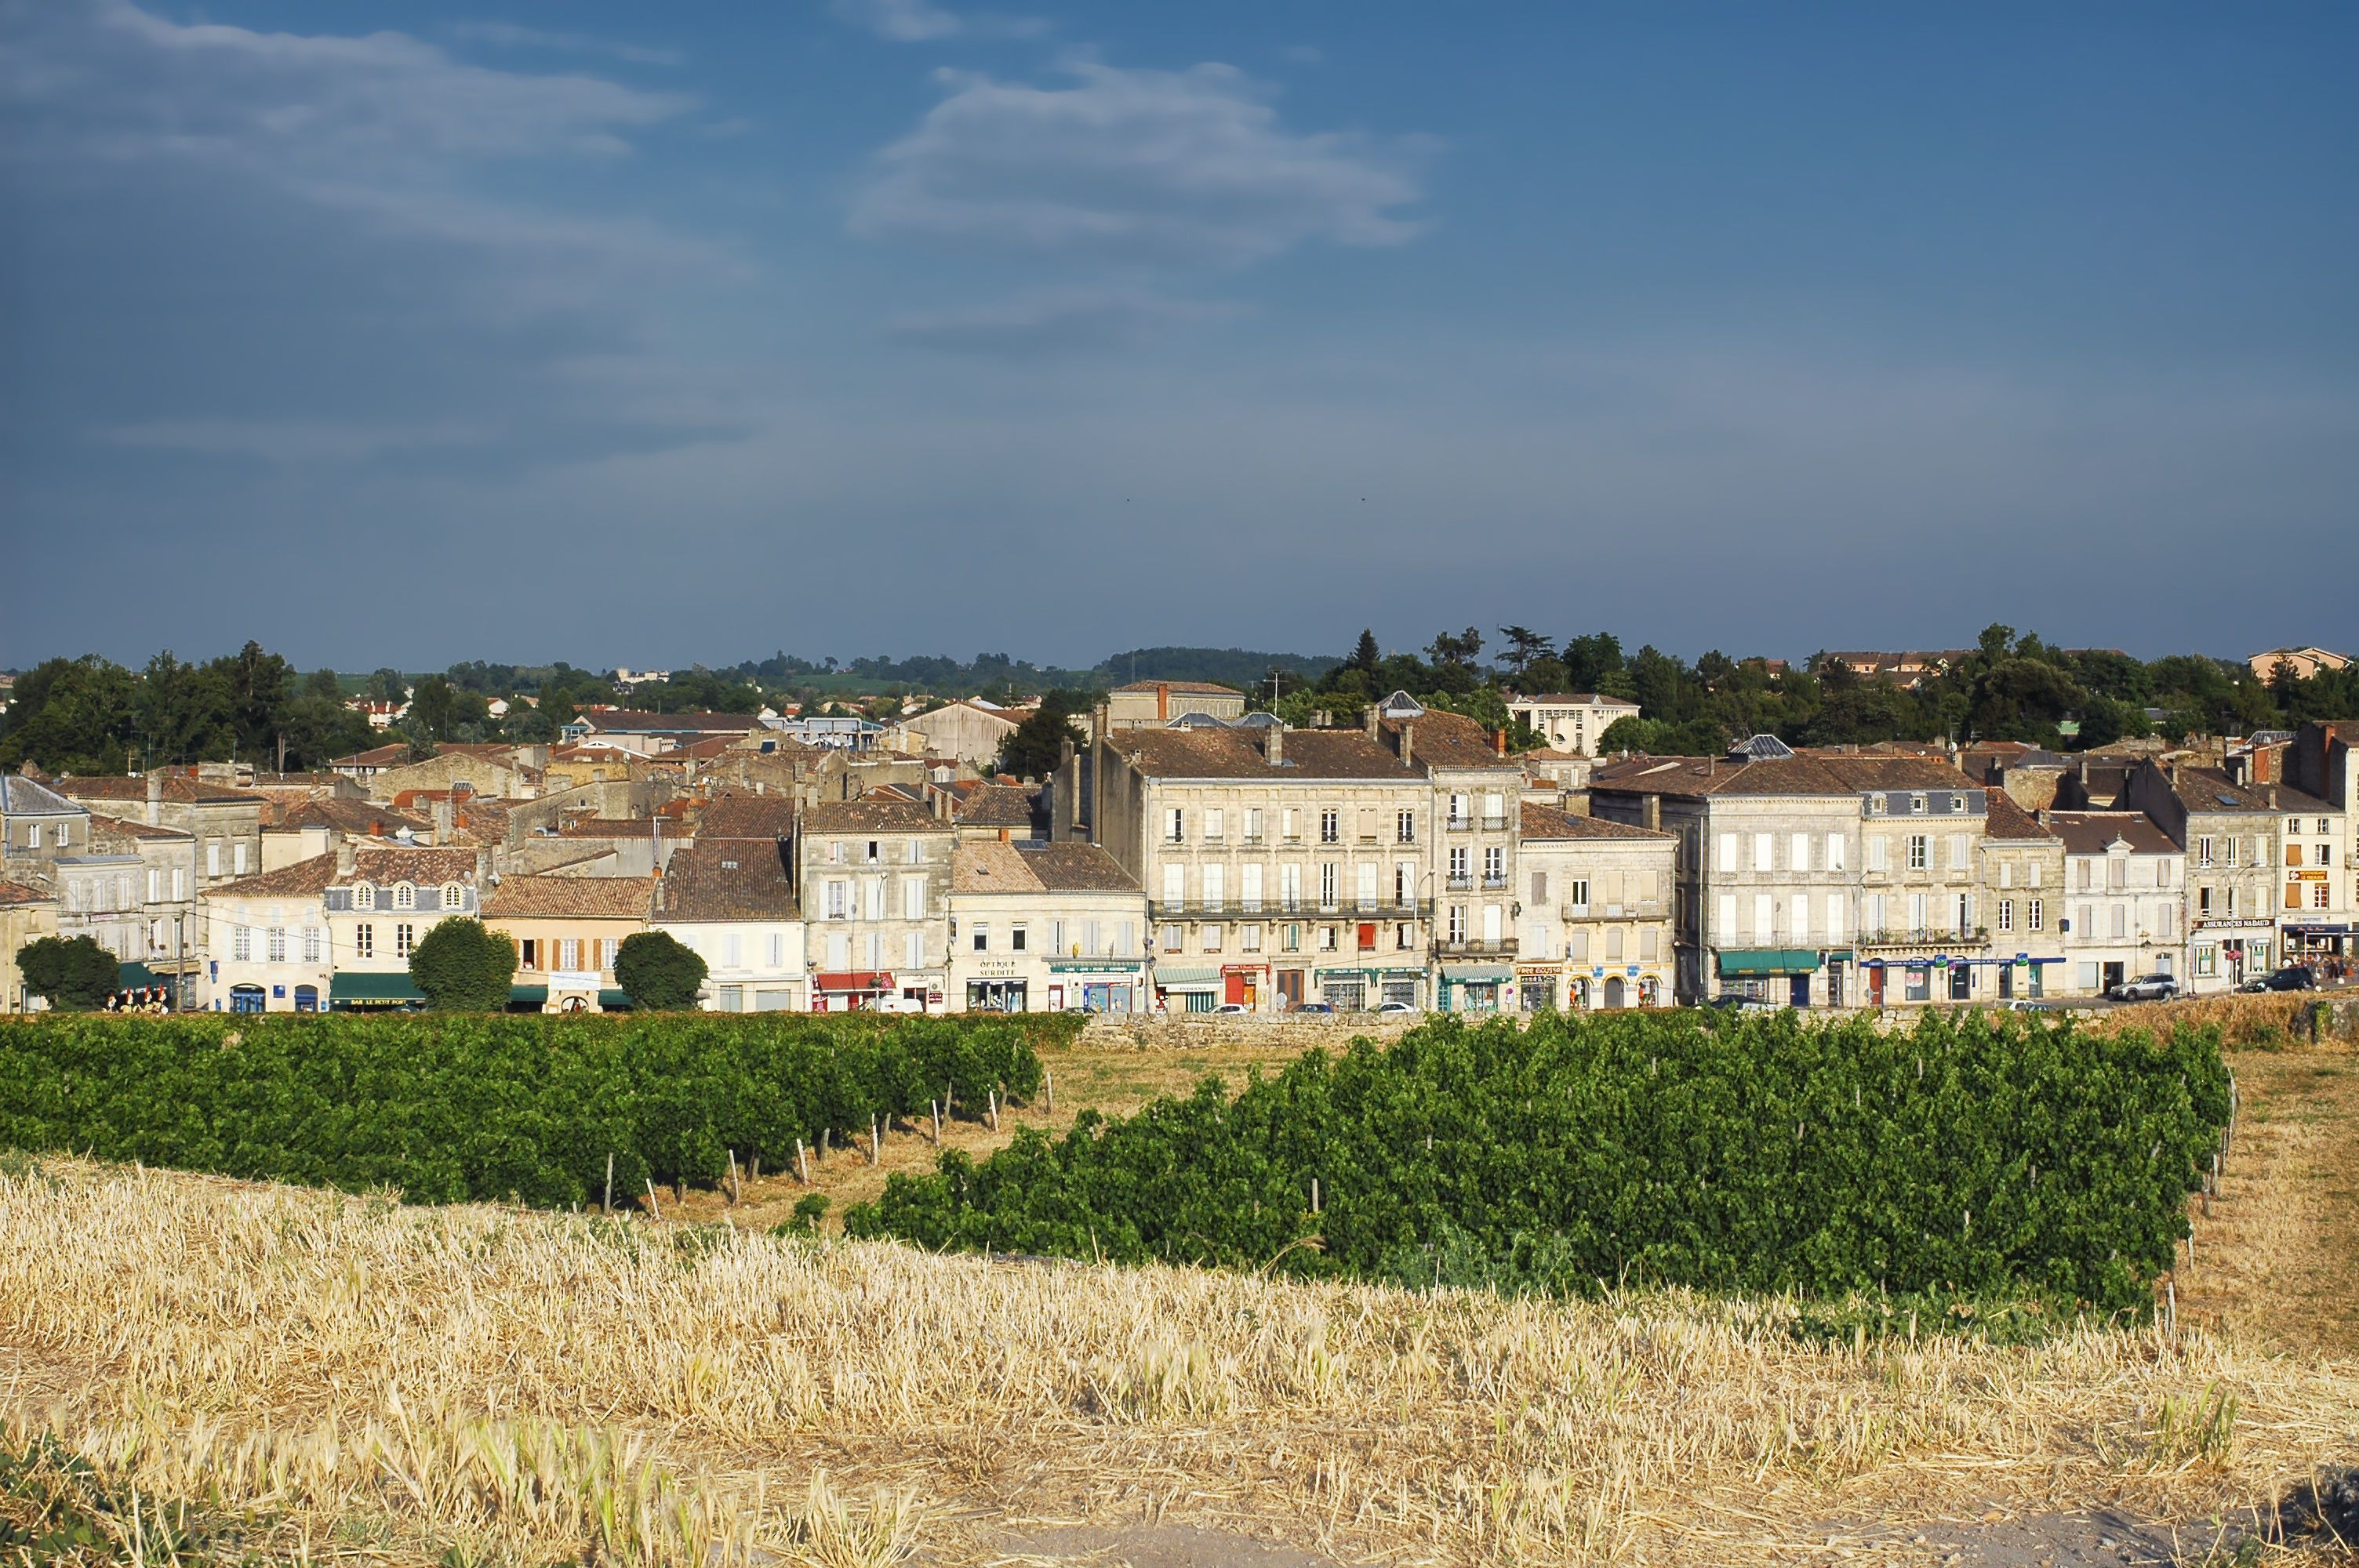 Blaye (Gironde, Aquitaine, France): the historic town with vineyard